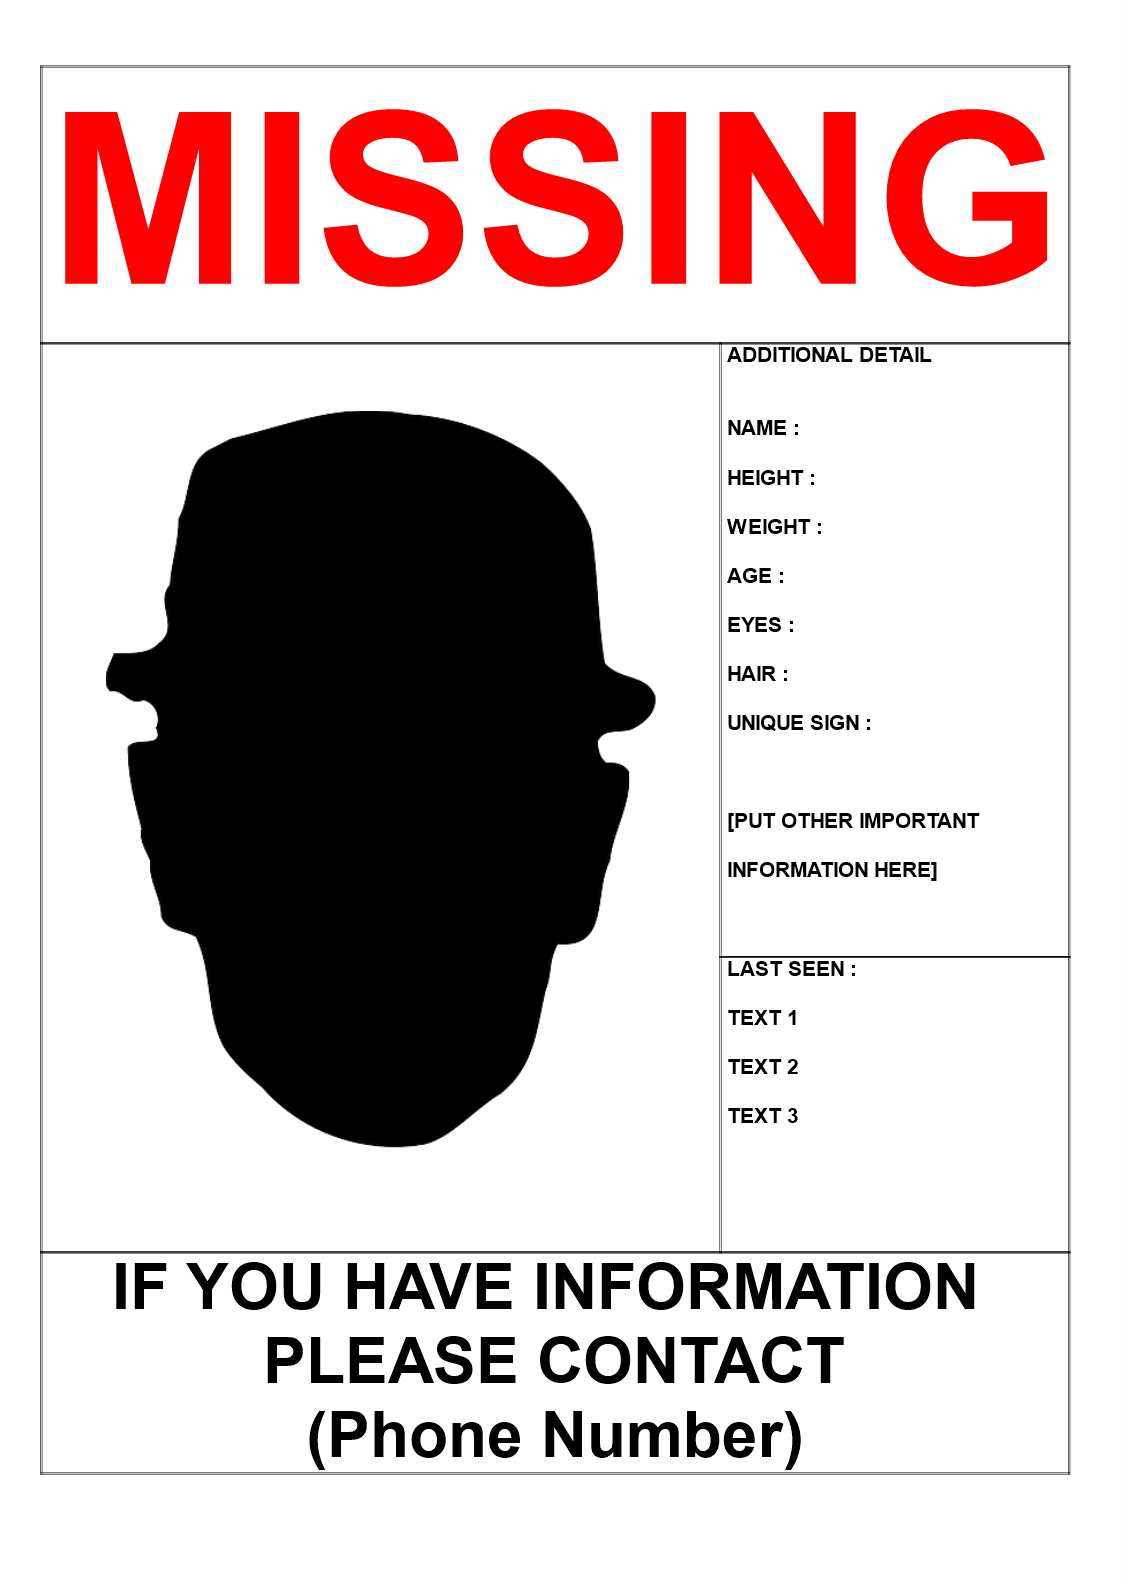 missing person poster template in a3 size download this missing